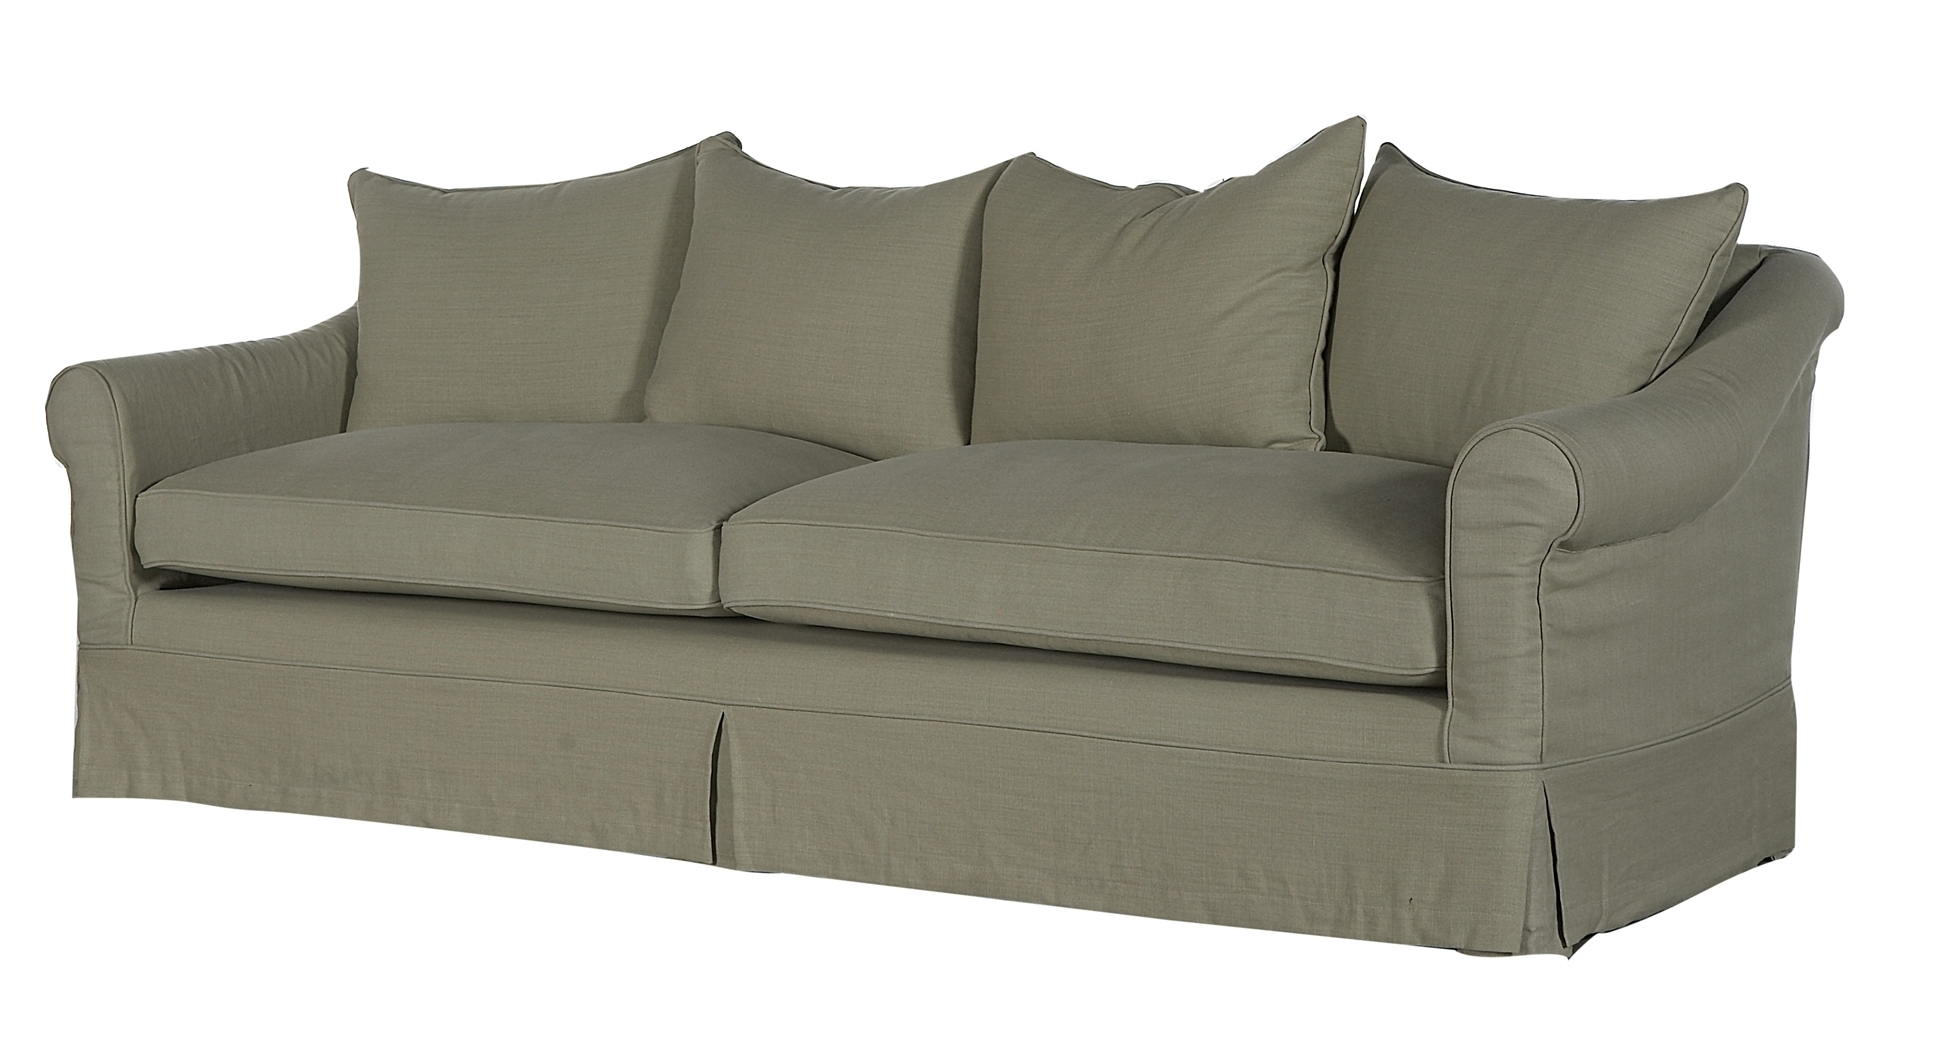 Well Known Sofa Design: Simple Sofa Removable Covers Ideas Sofas With Intended For Sofas With Removable Covers (View 5 of 15)